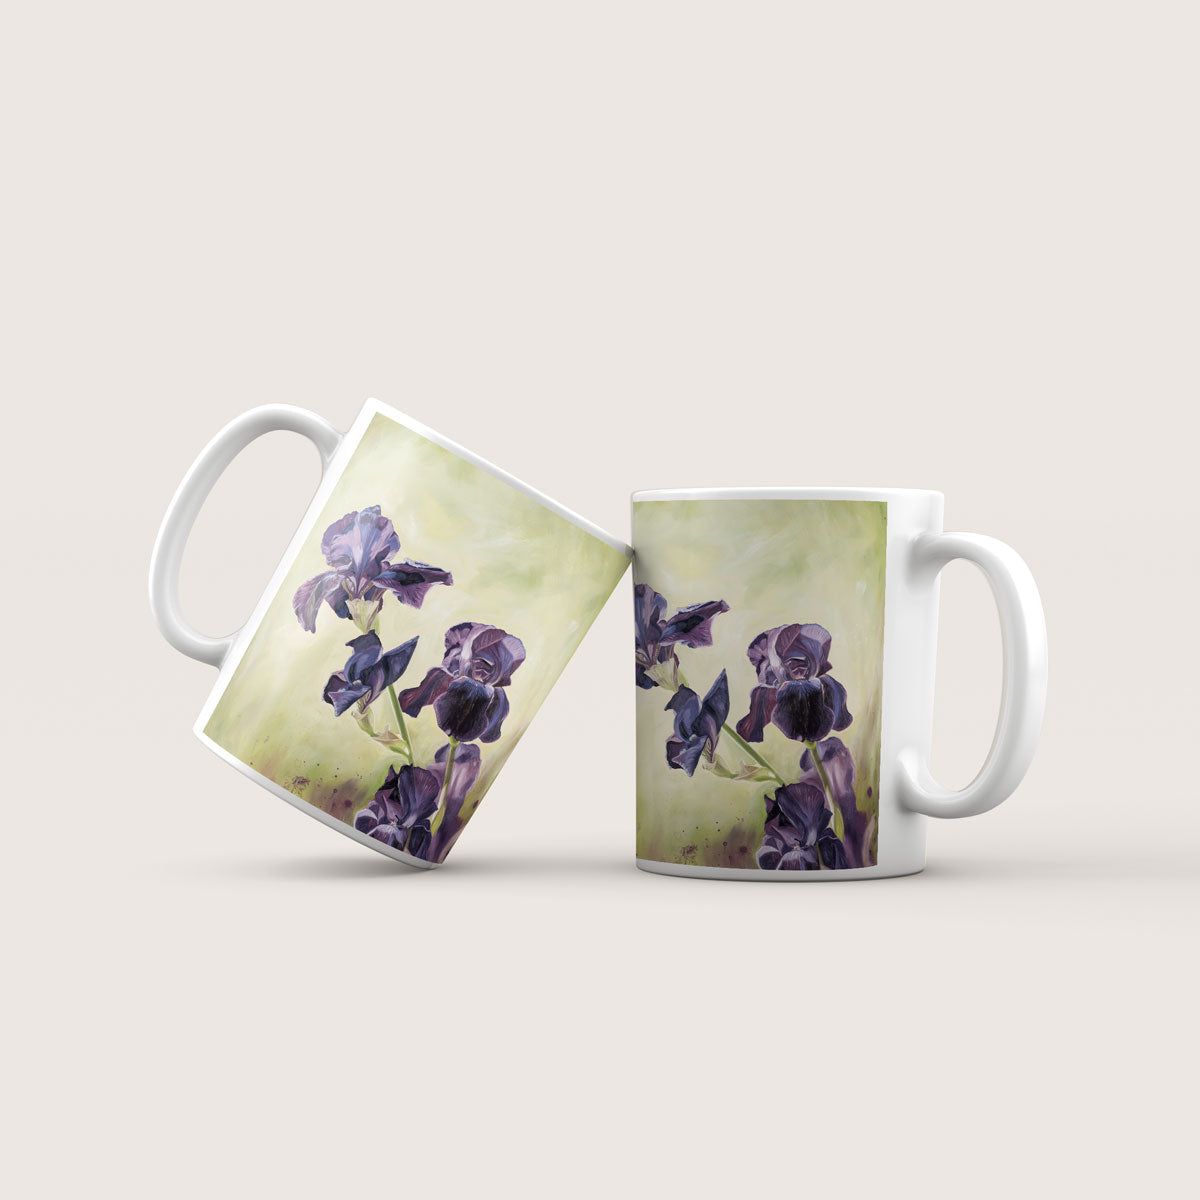 Verity - Irises Ceramic Mug